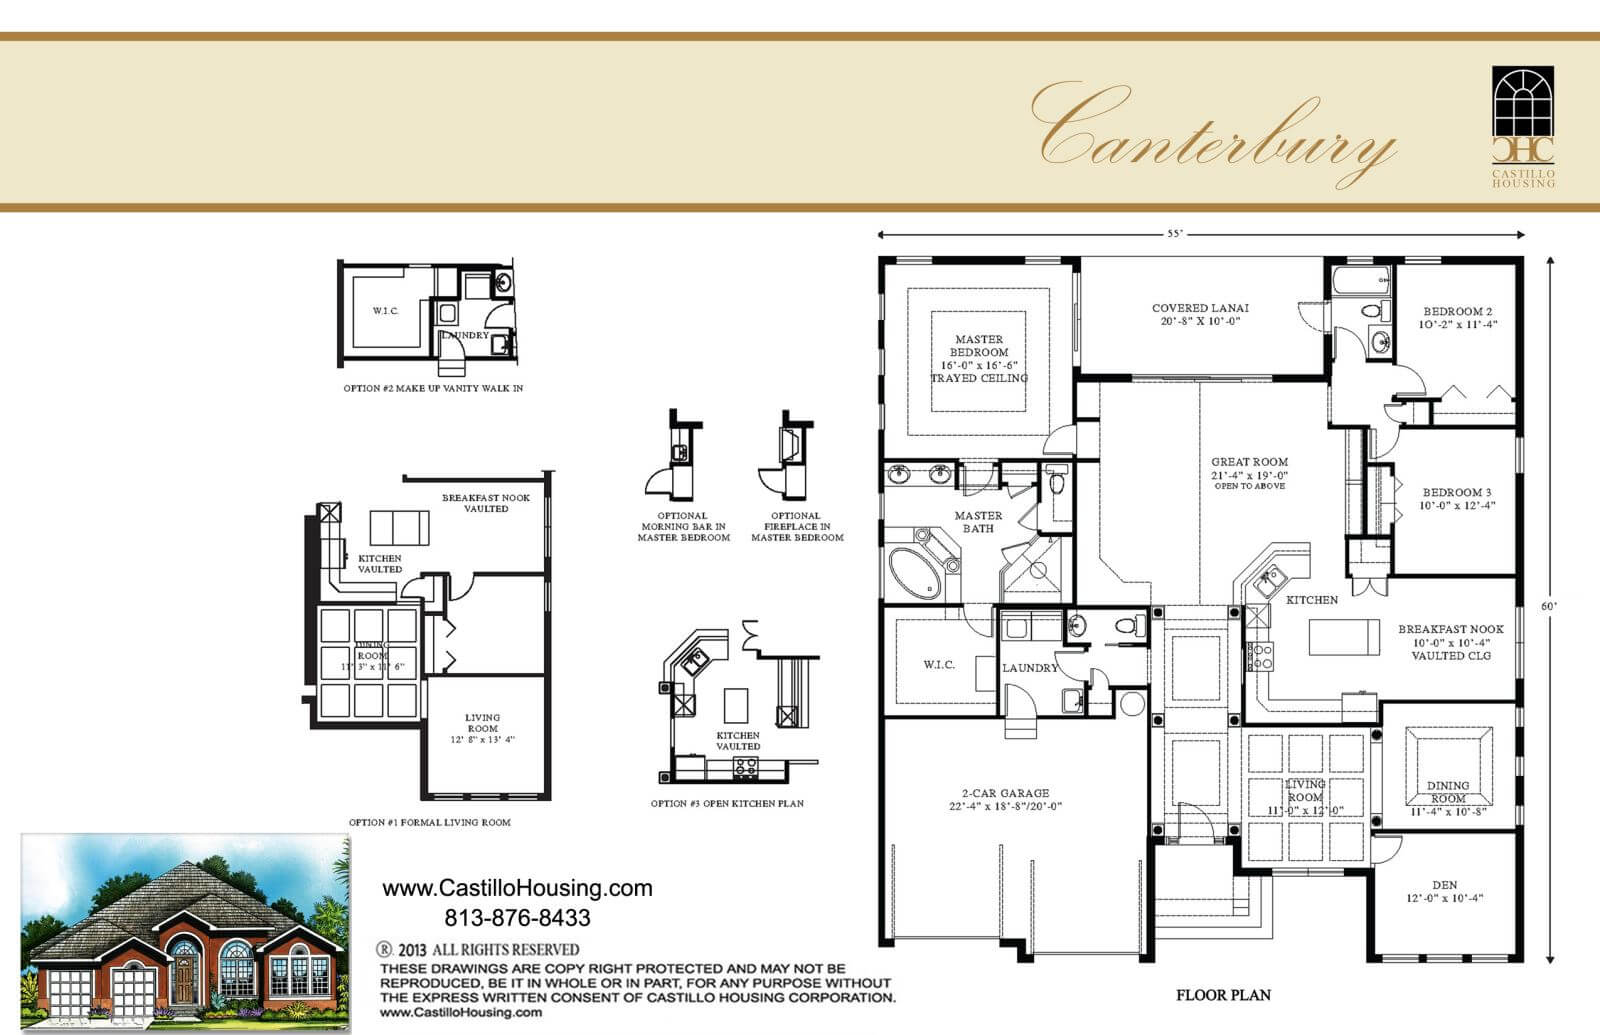 Floor Plans,2,001 SQ FT TO 2,500 SQ FT,1030